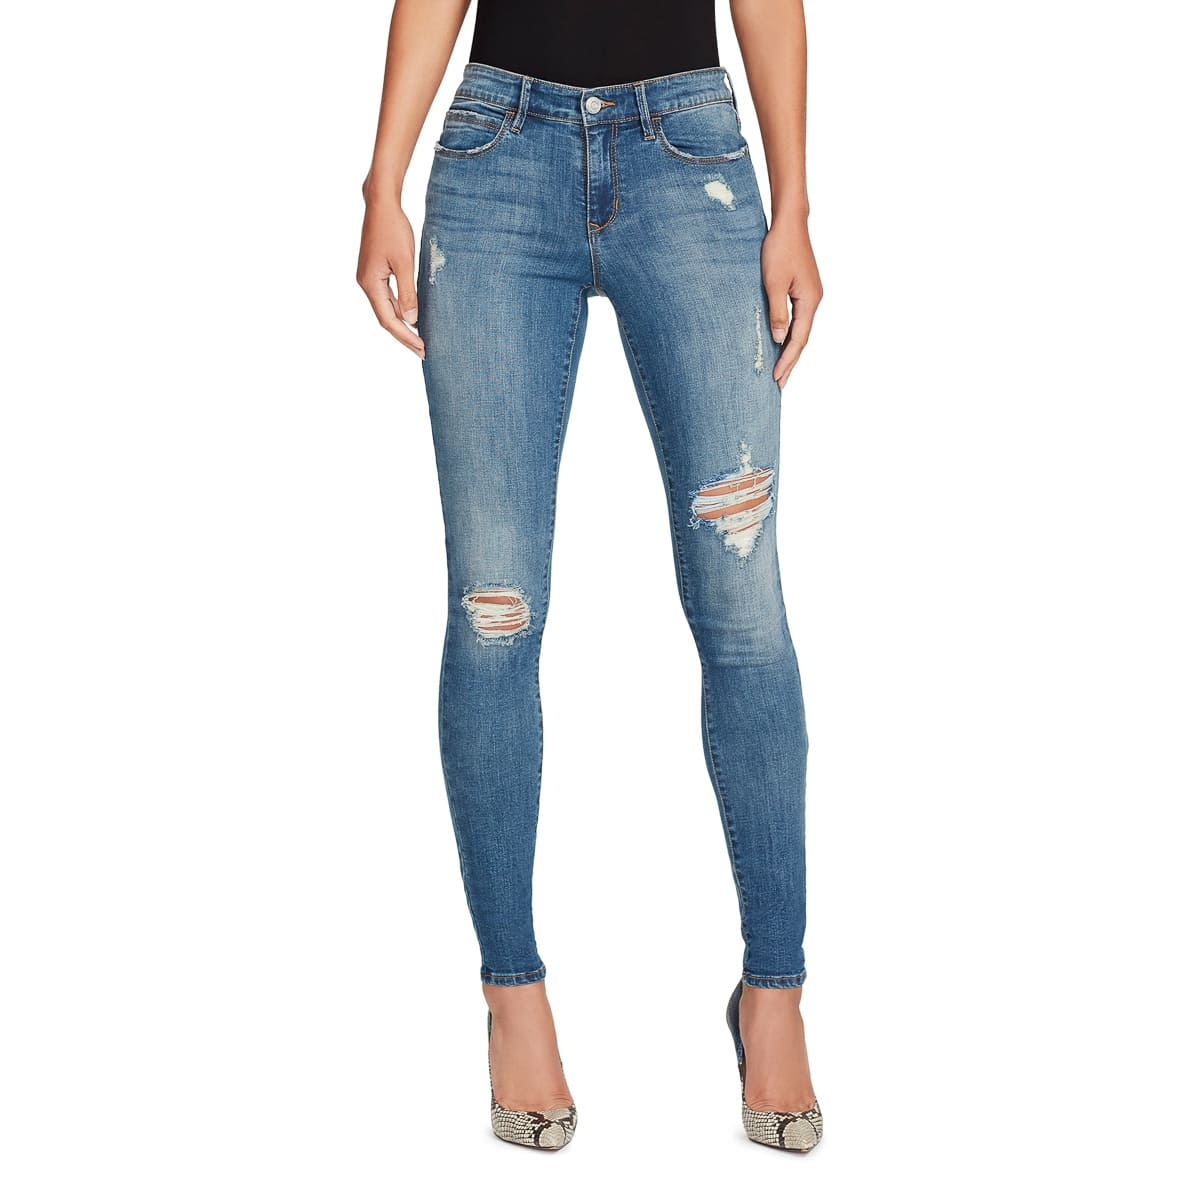 huge selection of 3ab0d 51bea Mid-rise Skinny Jeans Distressed - Westerlo -